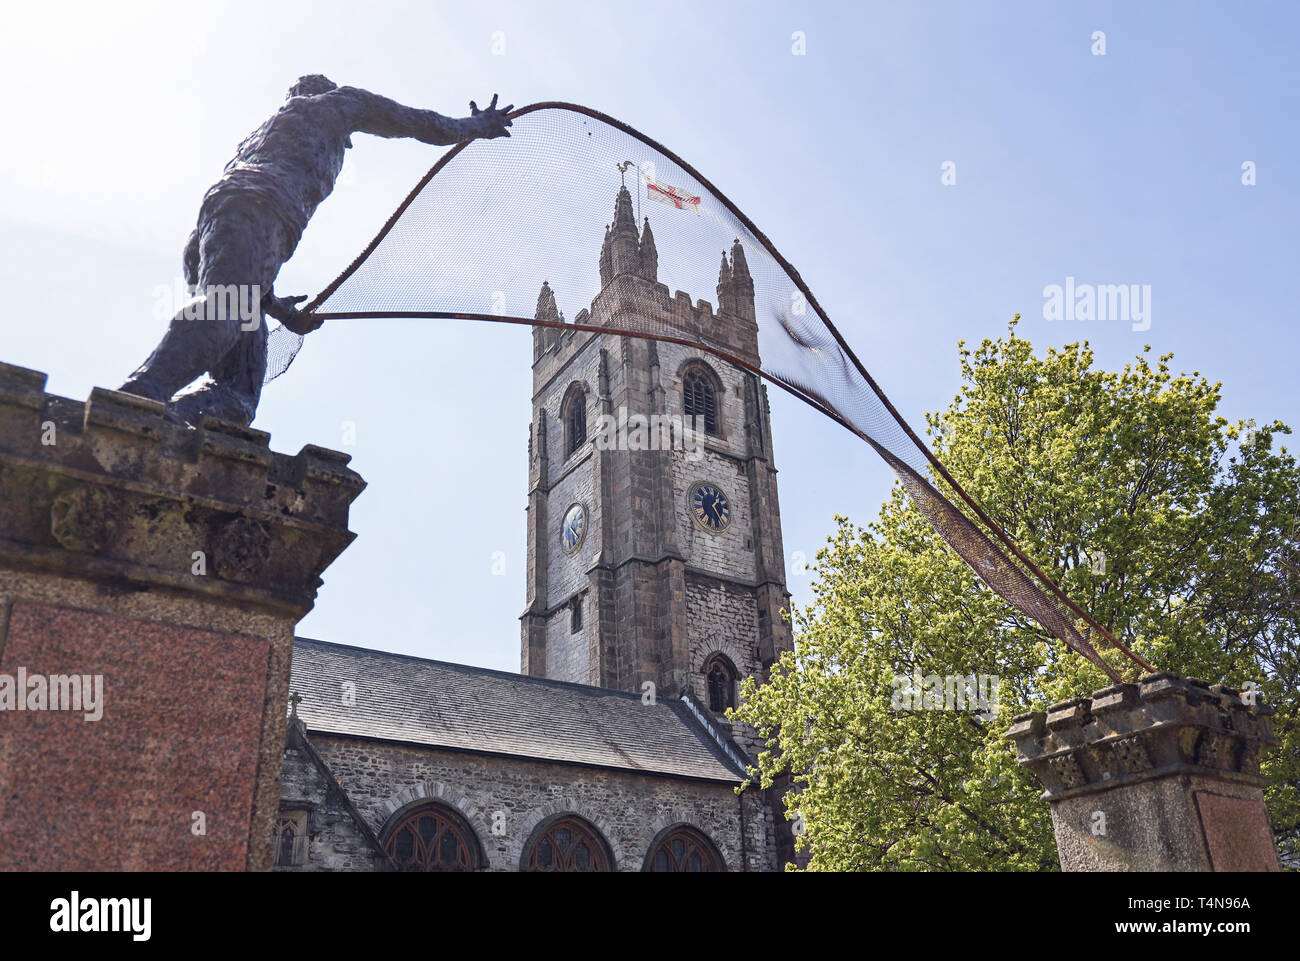 St Andrew the Fisherman sculpture at entrance gates to St Andrew's Church Plymouth - Stock Image